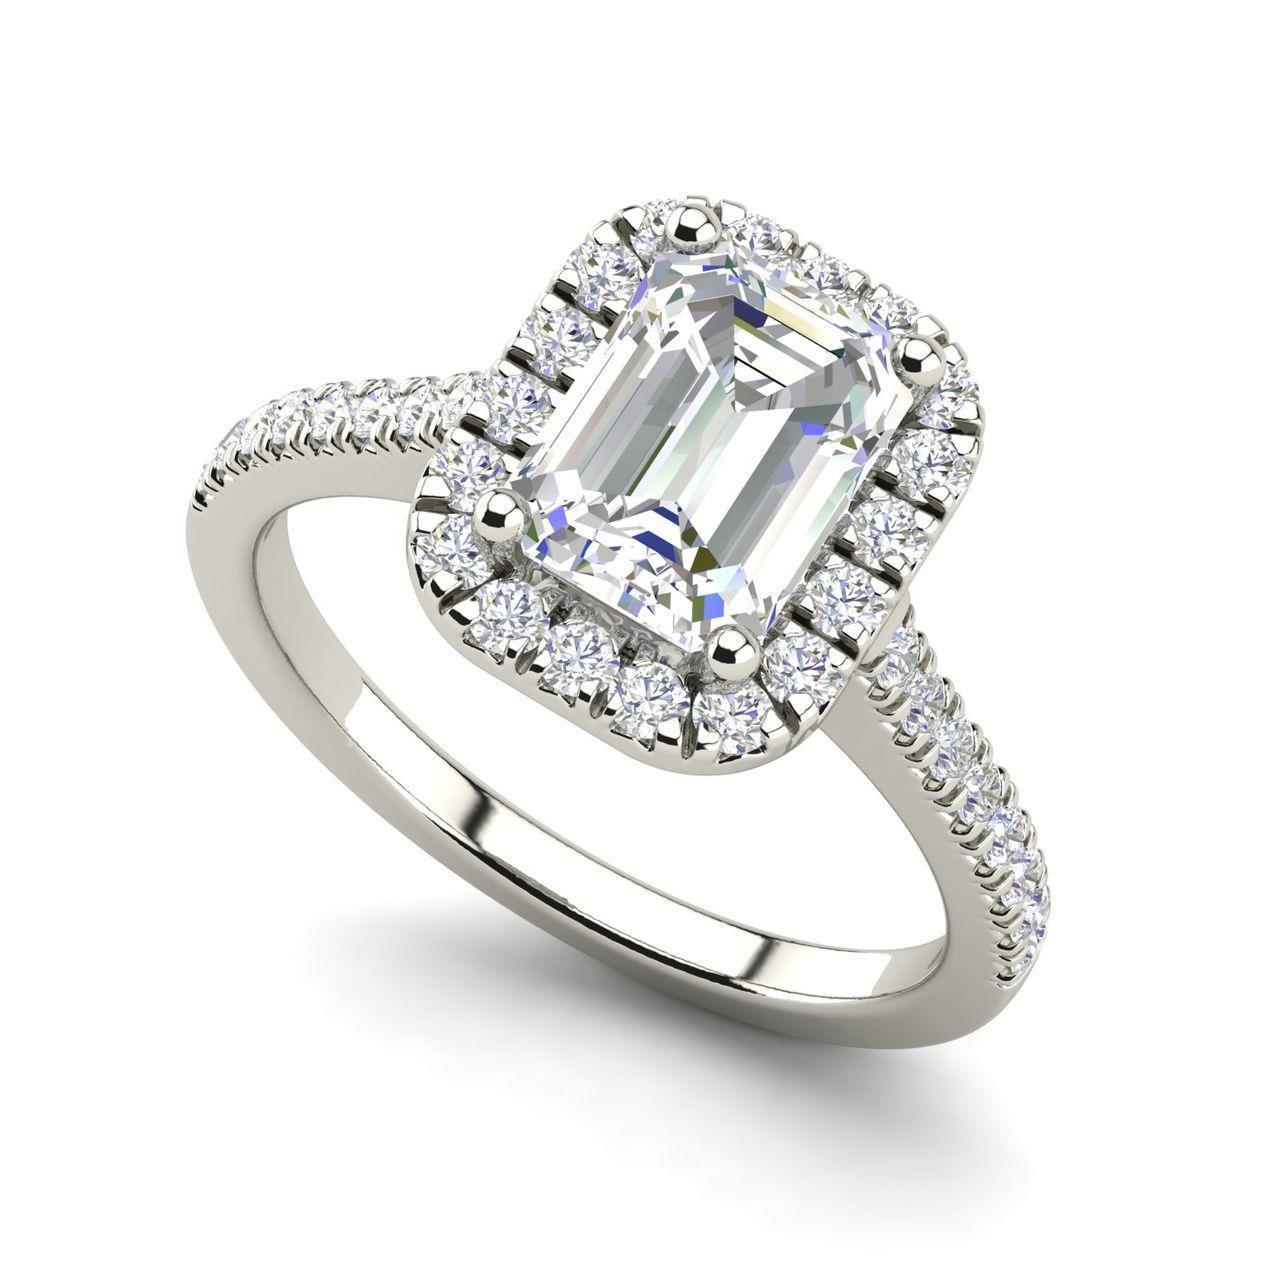 6c5065fb7 Halo Pave 2.1 Carat VS1/H Emerald Cut Diamond Engagement Ring White Gold